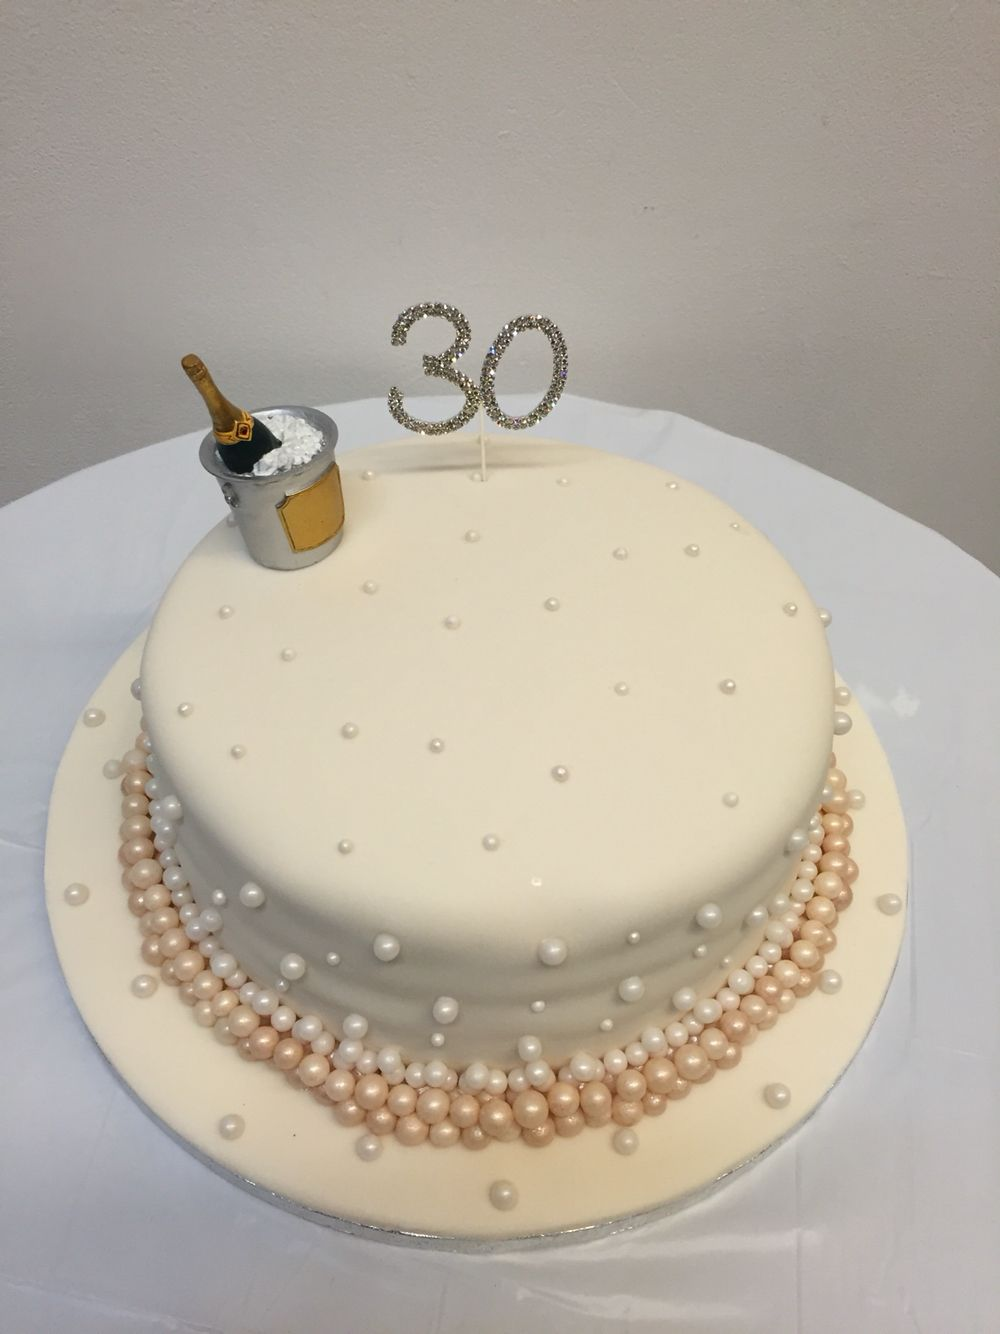 Cake Ideas For Parents Anniversary : 30th (pearl) wedding anniversary cake - lemon cake with ...